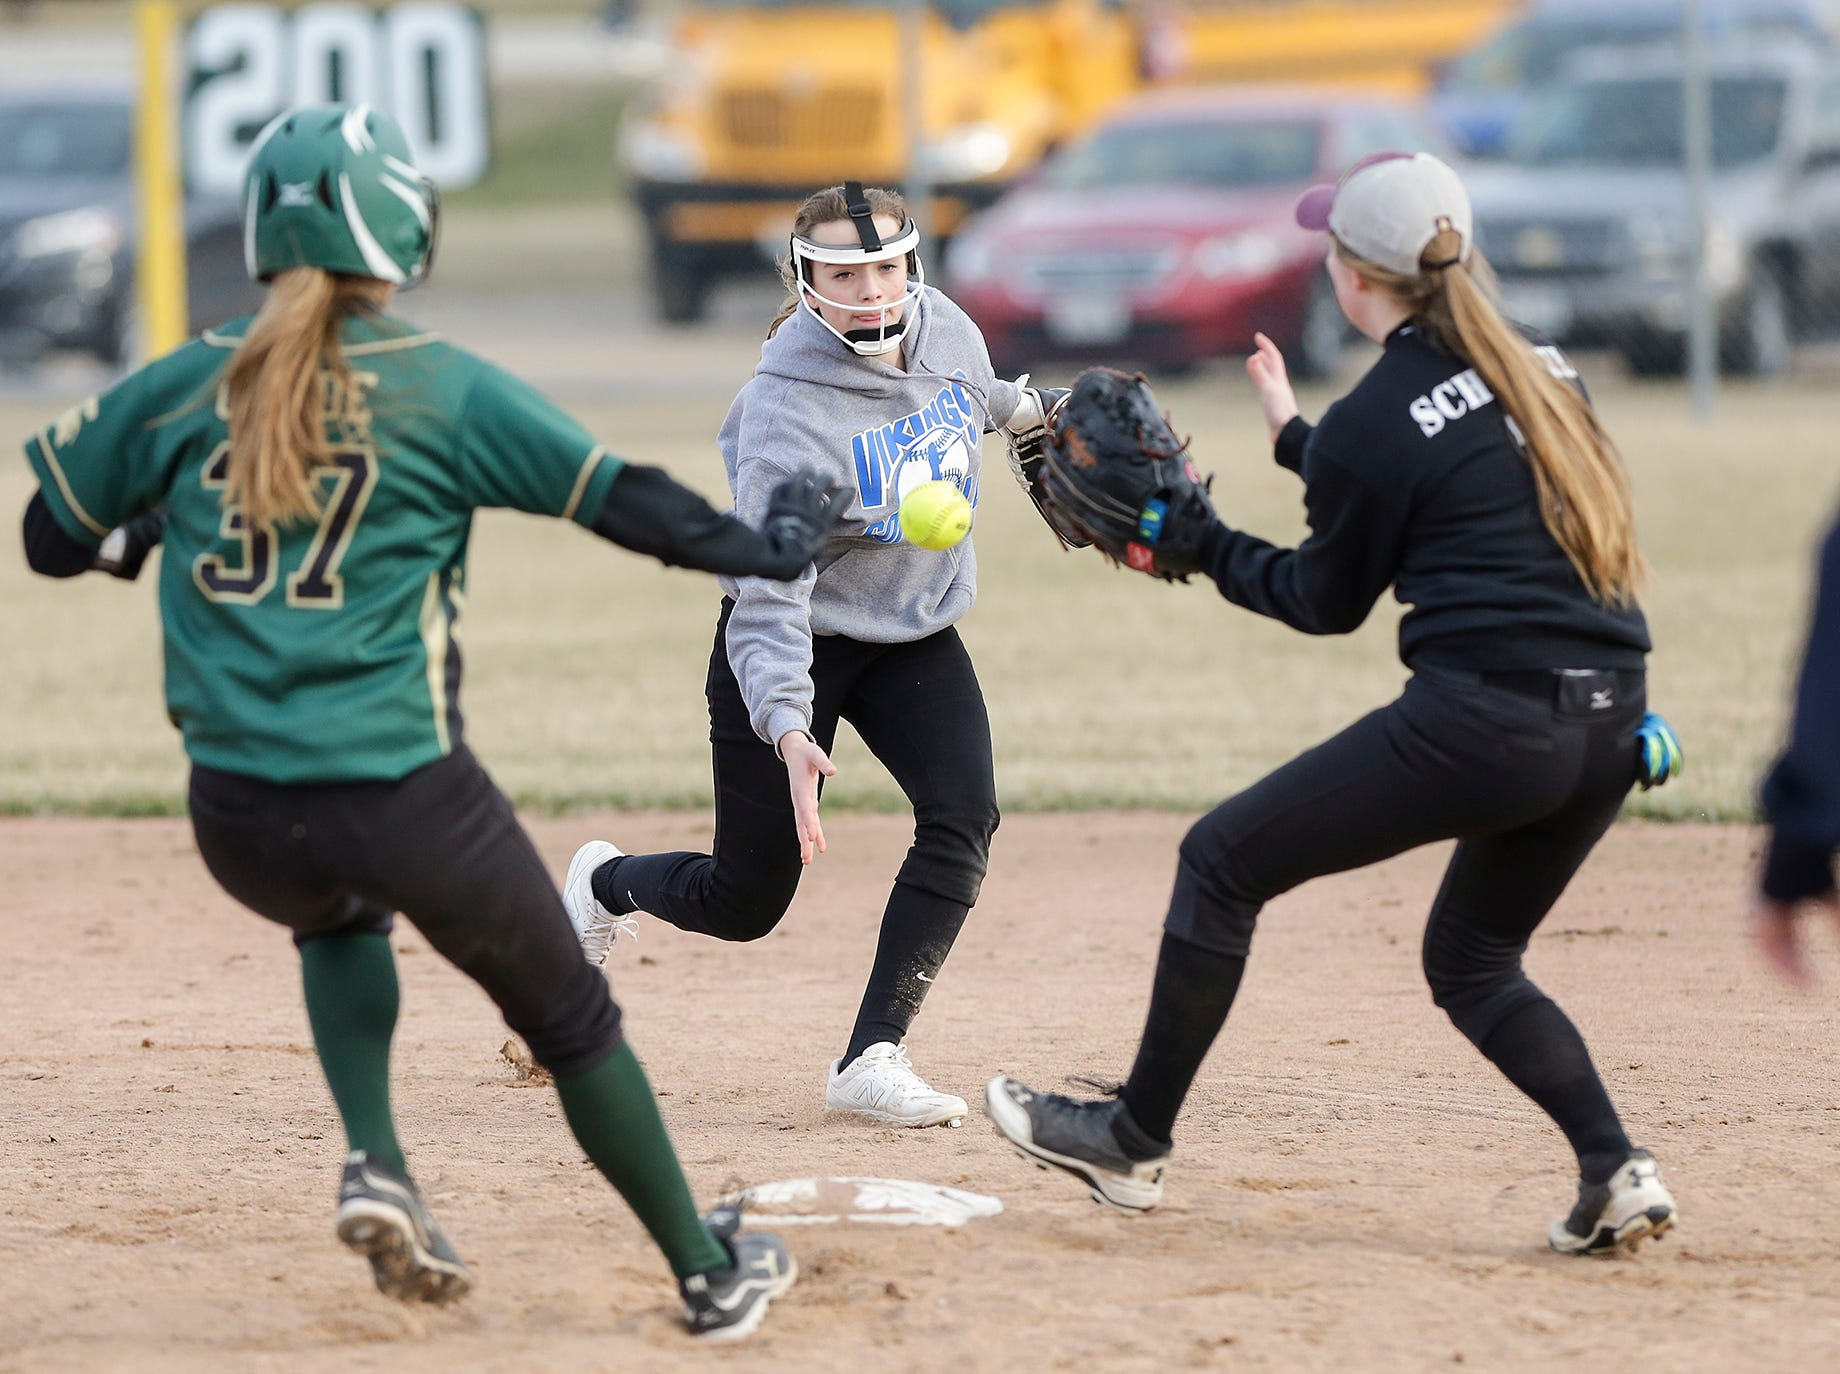 Winnebago Lutheran Academy softball's Rylee Loehr (center) throws the ball to Kylie Schwefel to tag out Laconia High School's Maci Grade at second base April 9, 2019 during their game in Fond du Lac, Wis. Laconia won the game 25-9. Doug Raflik/USA TODAY NETWORK-Wisconsin